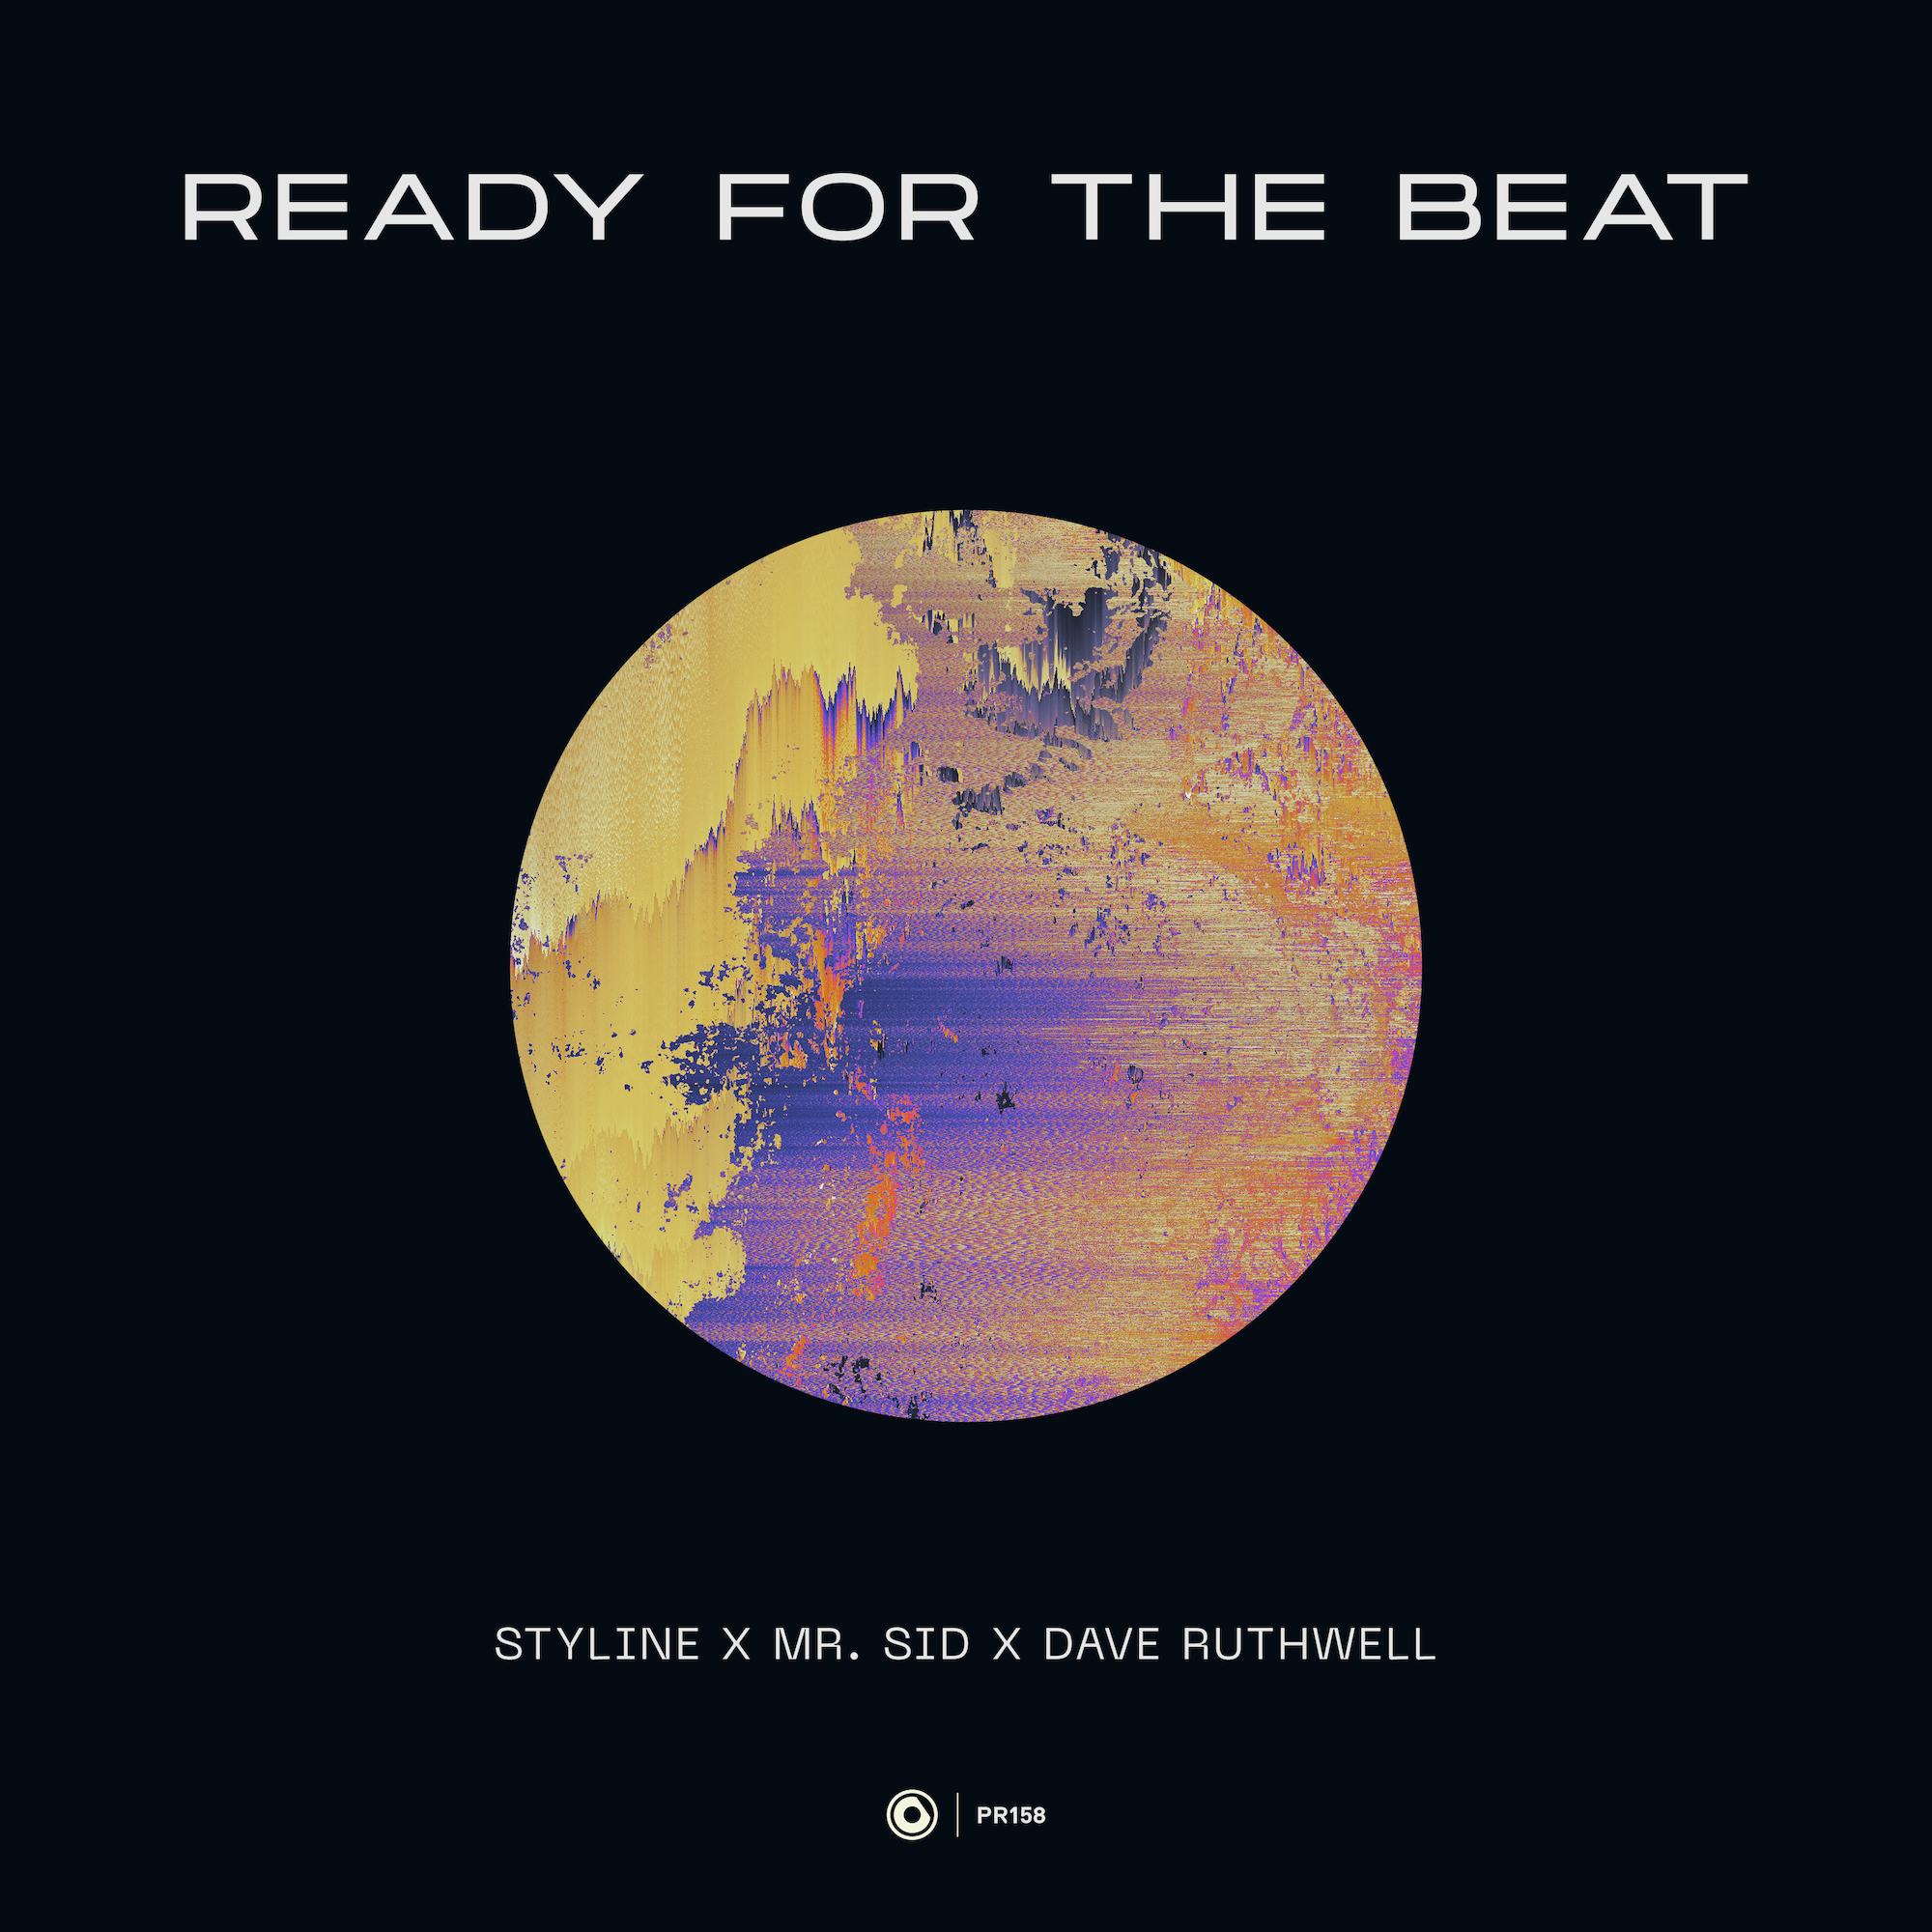 Copy of READY FOR THE BEAT